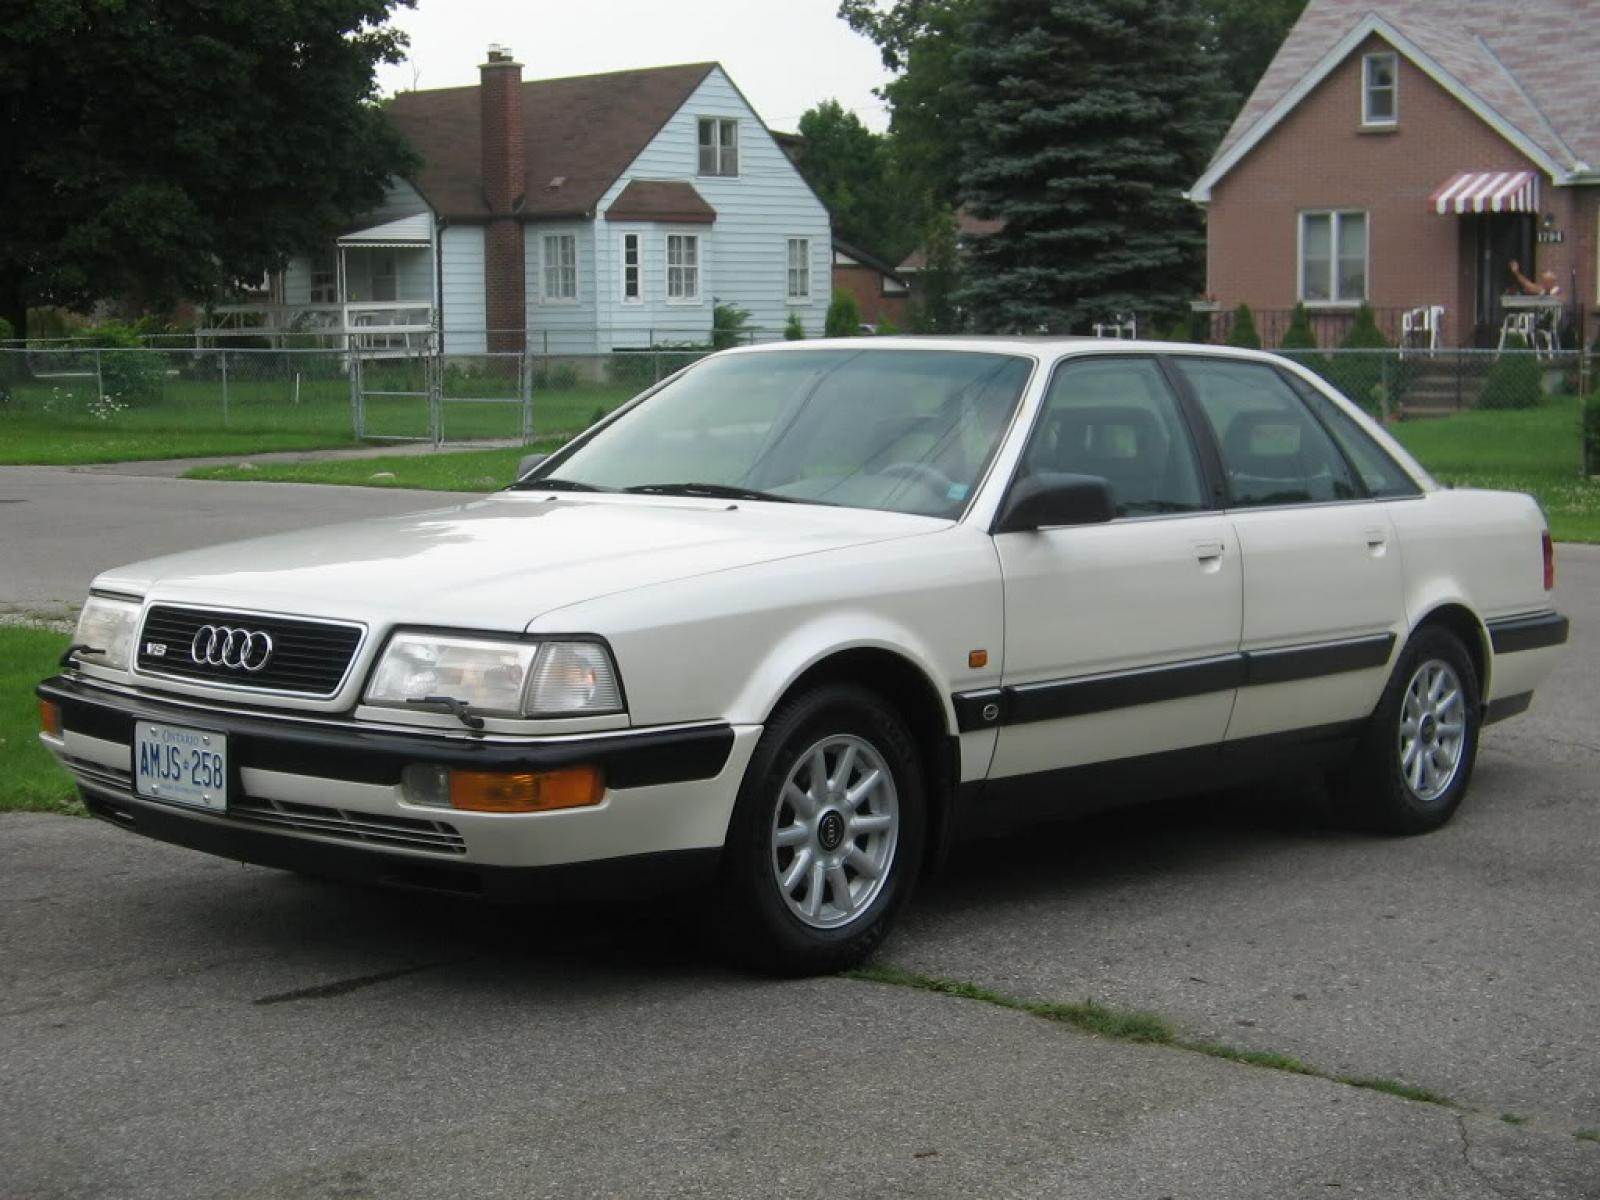 1993 audi v8 information and photos zombiedrive. Black Bedroom Furniture Sets. Home Design Ideas